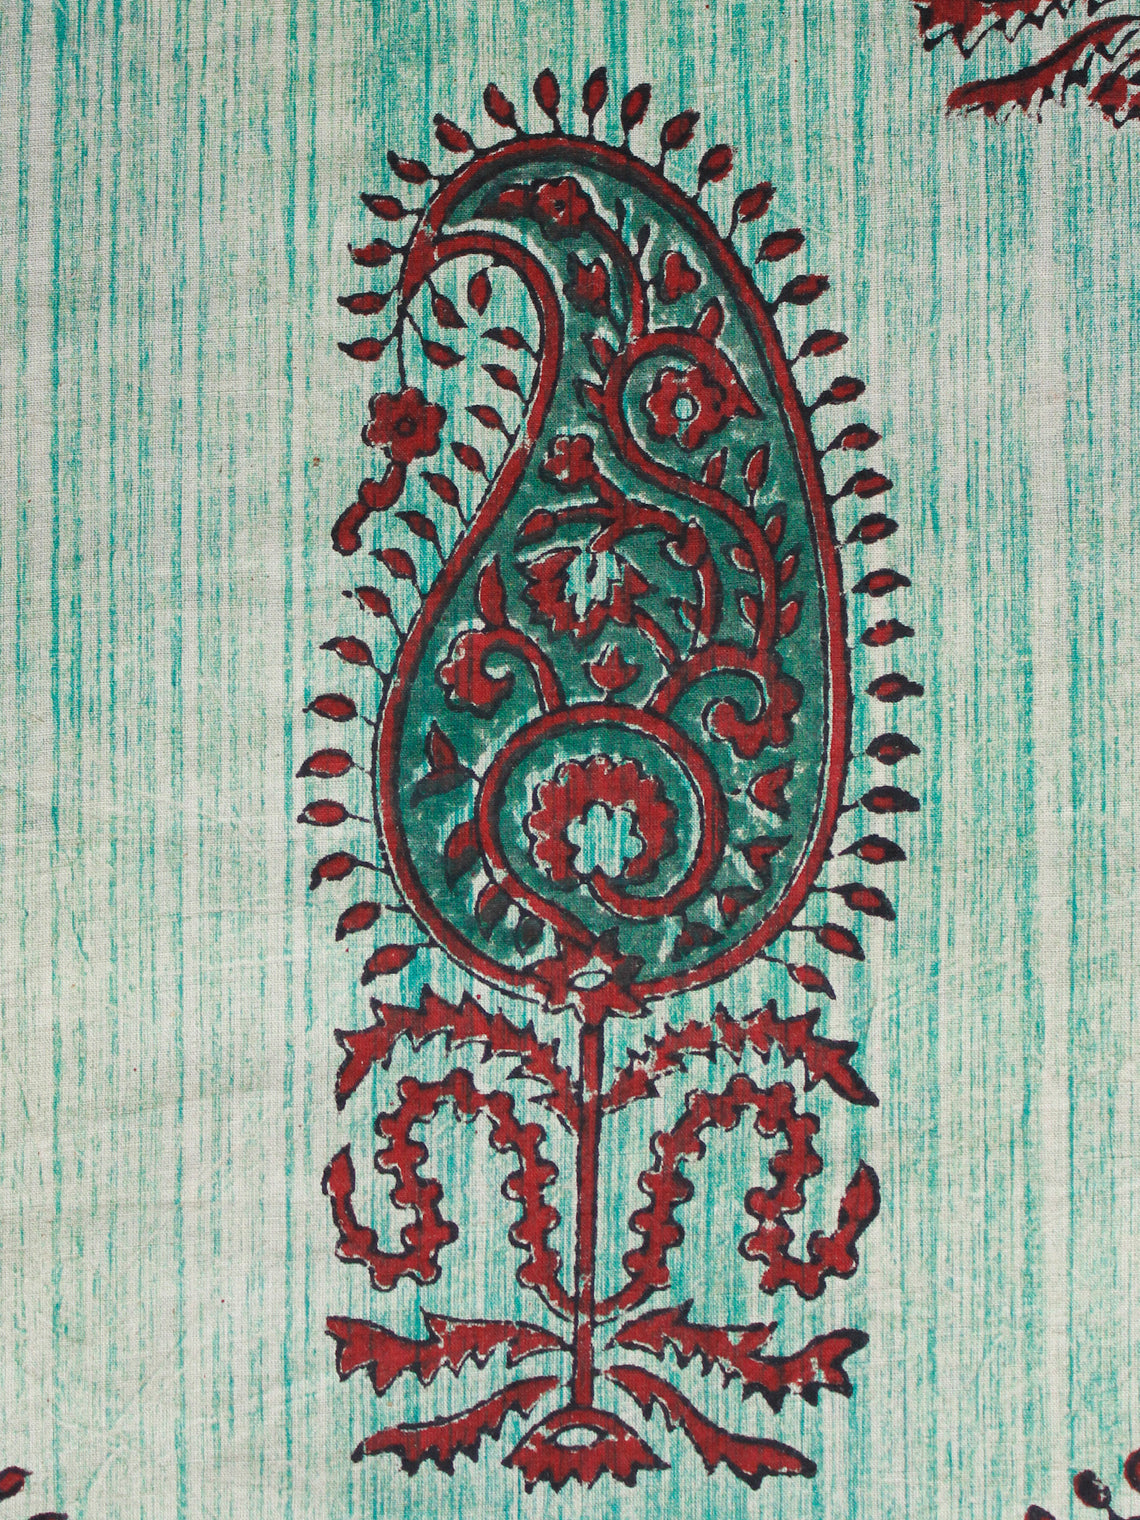 Ivory Green Maroon Hand Brush Printed & Block Printed Cotton Fabric Per Meter - F001F1556